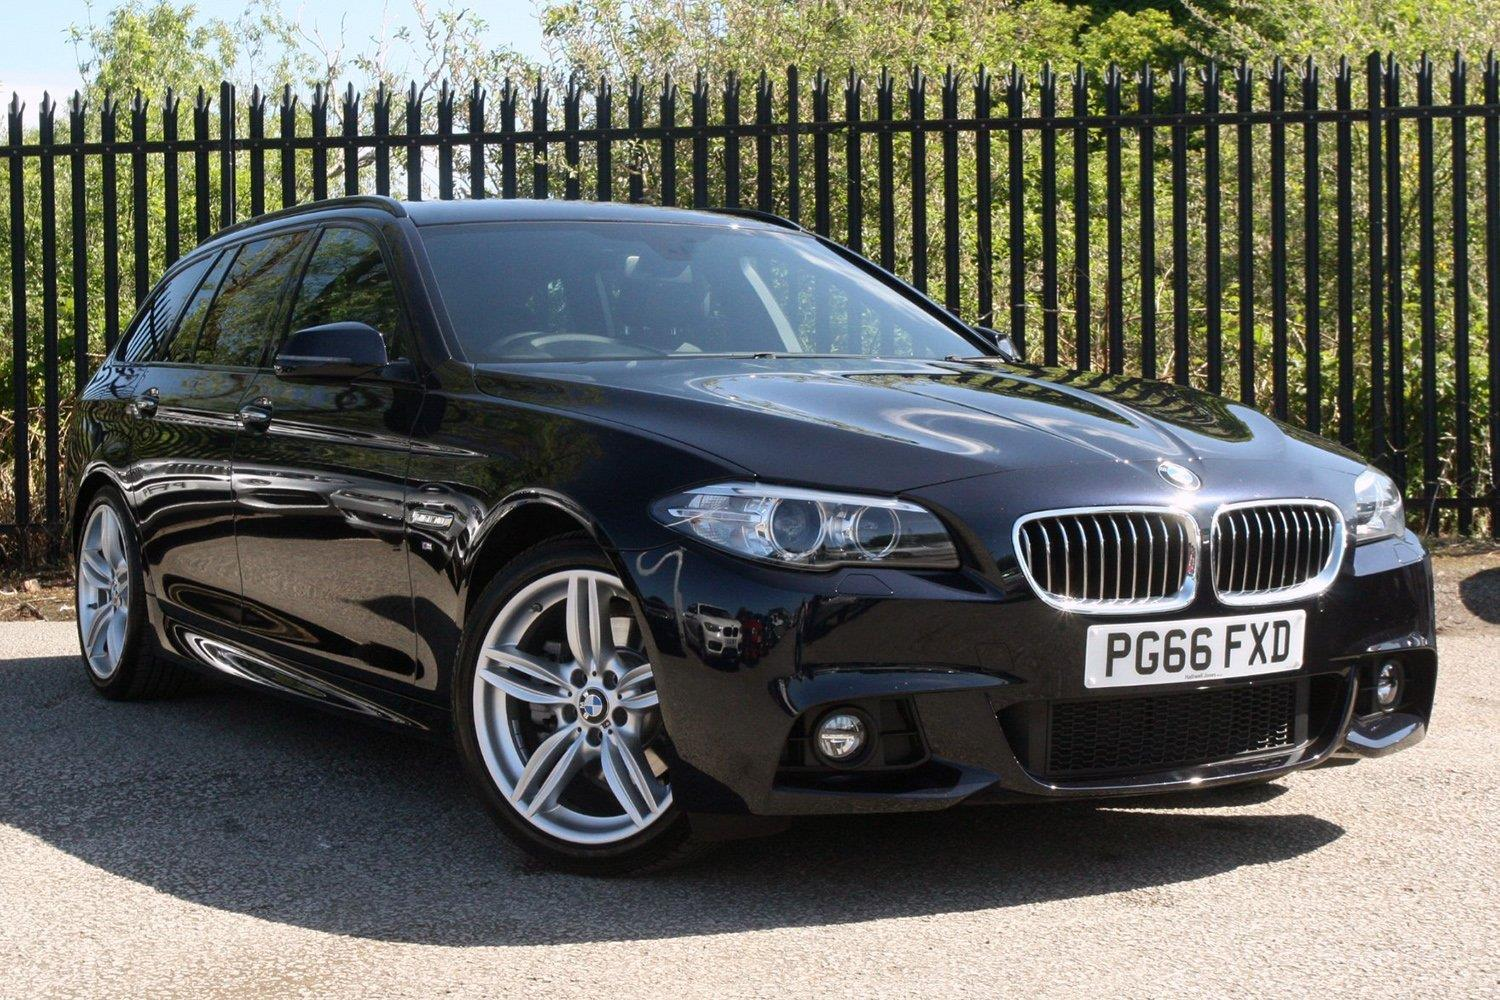 BMW 5 Series Touring PG66FXD - Image 8